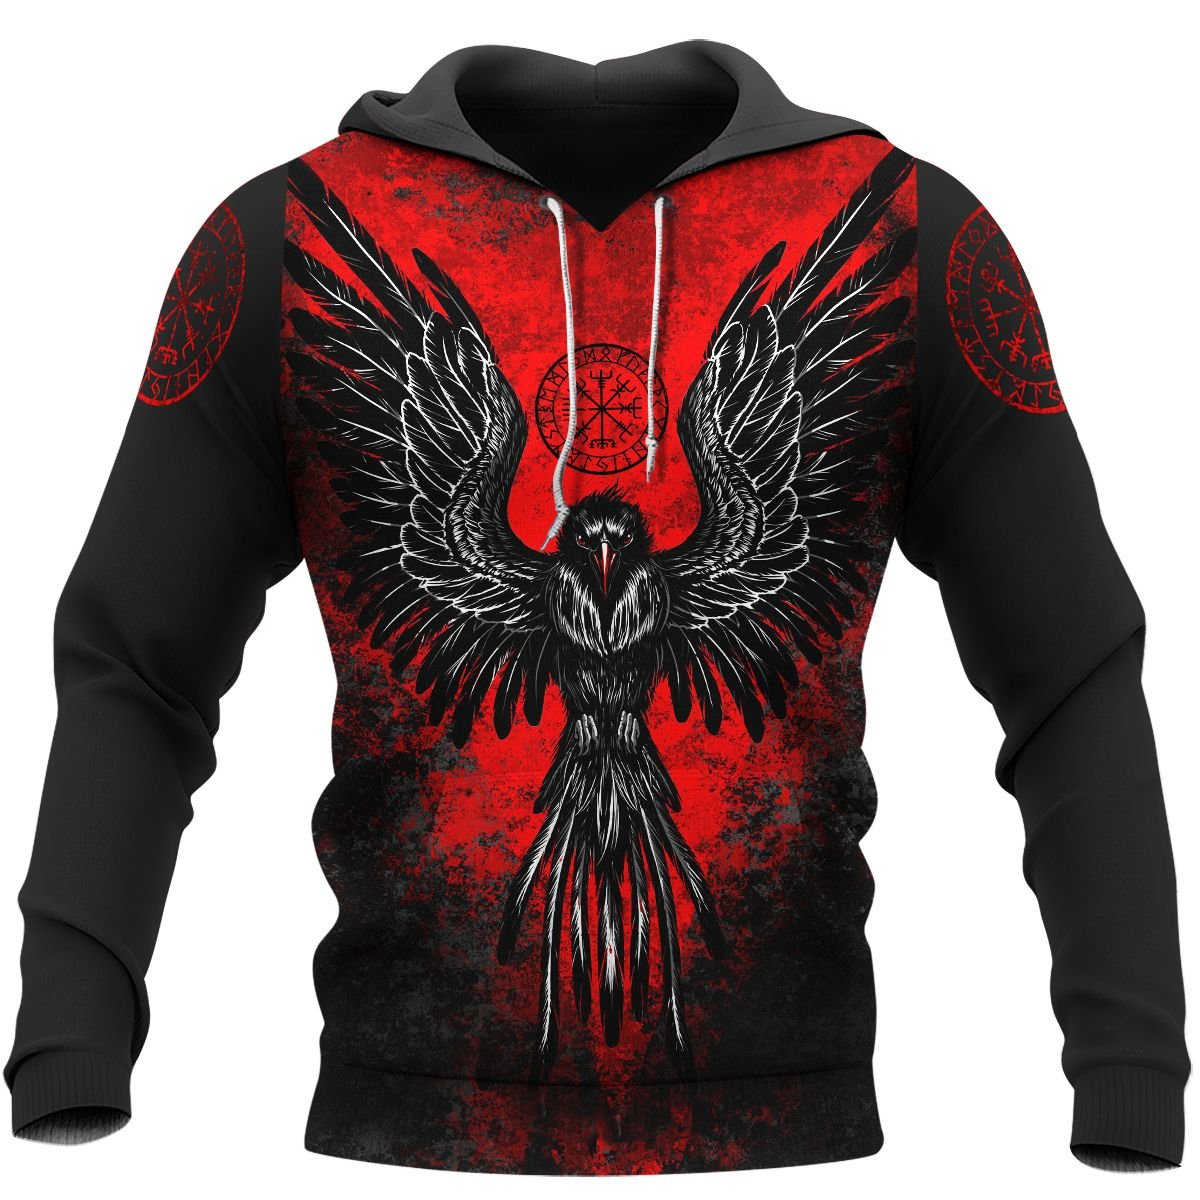 Viking Raven Vegvisir red and black Hoodie and T-shirt